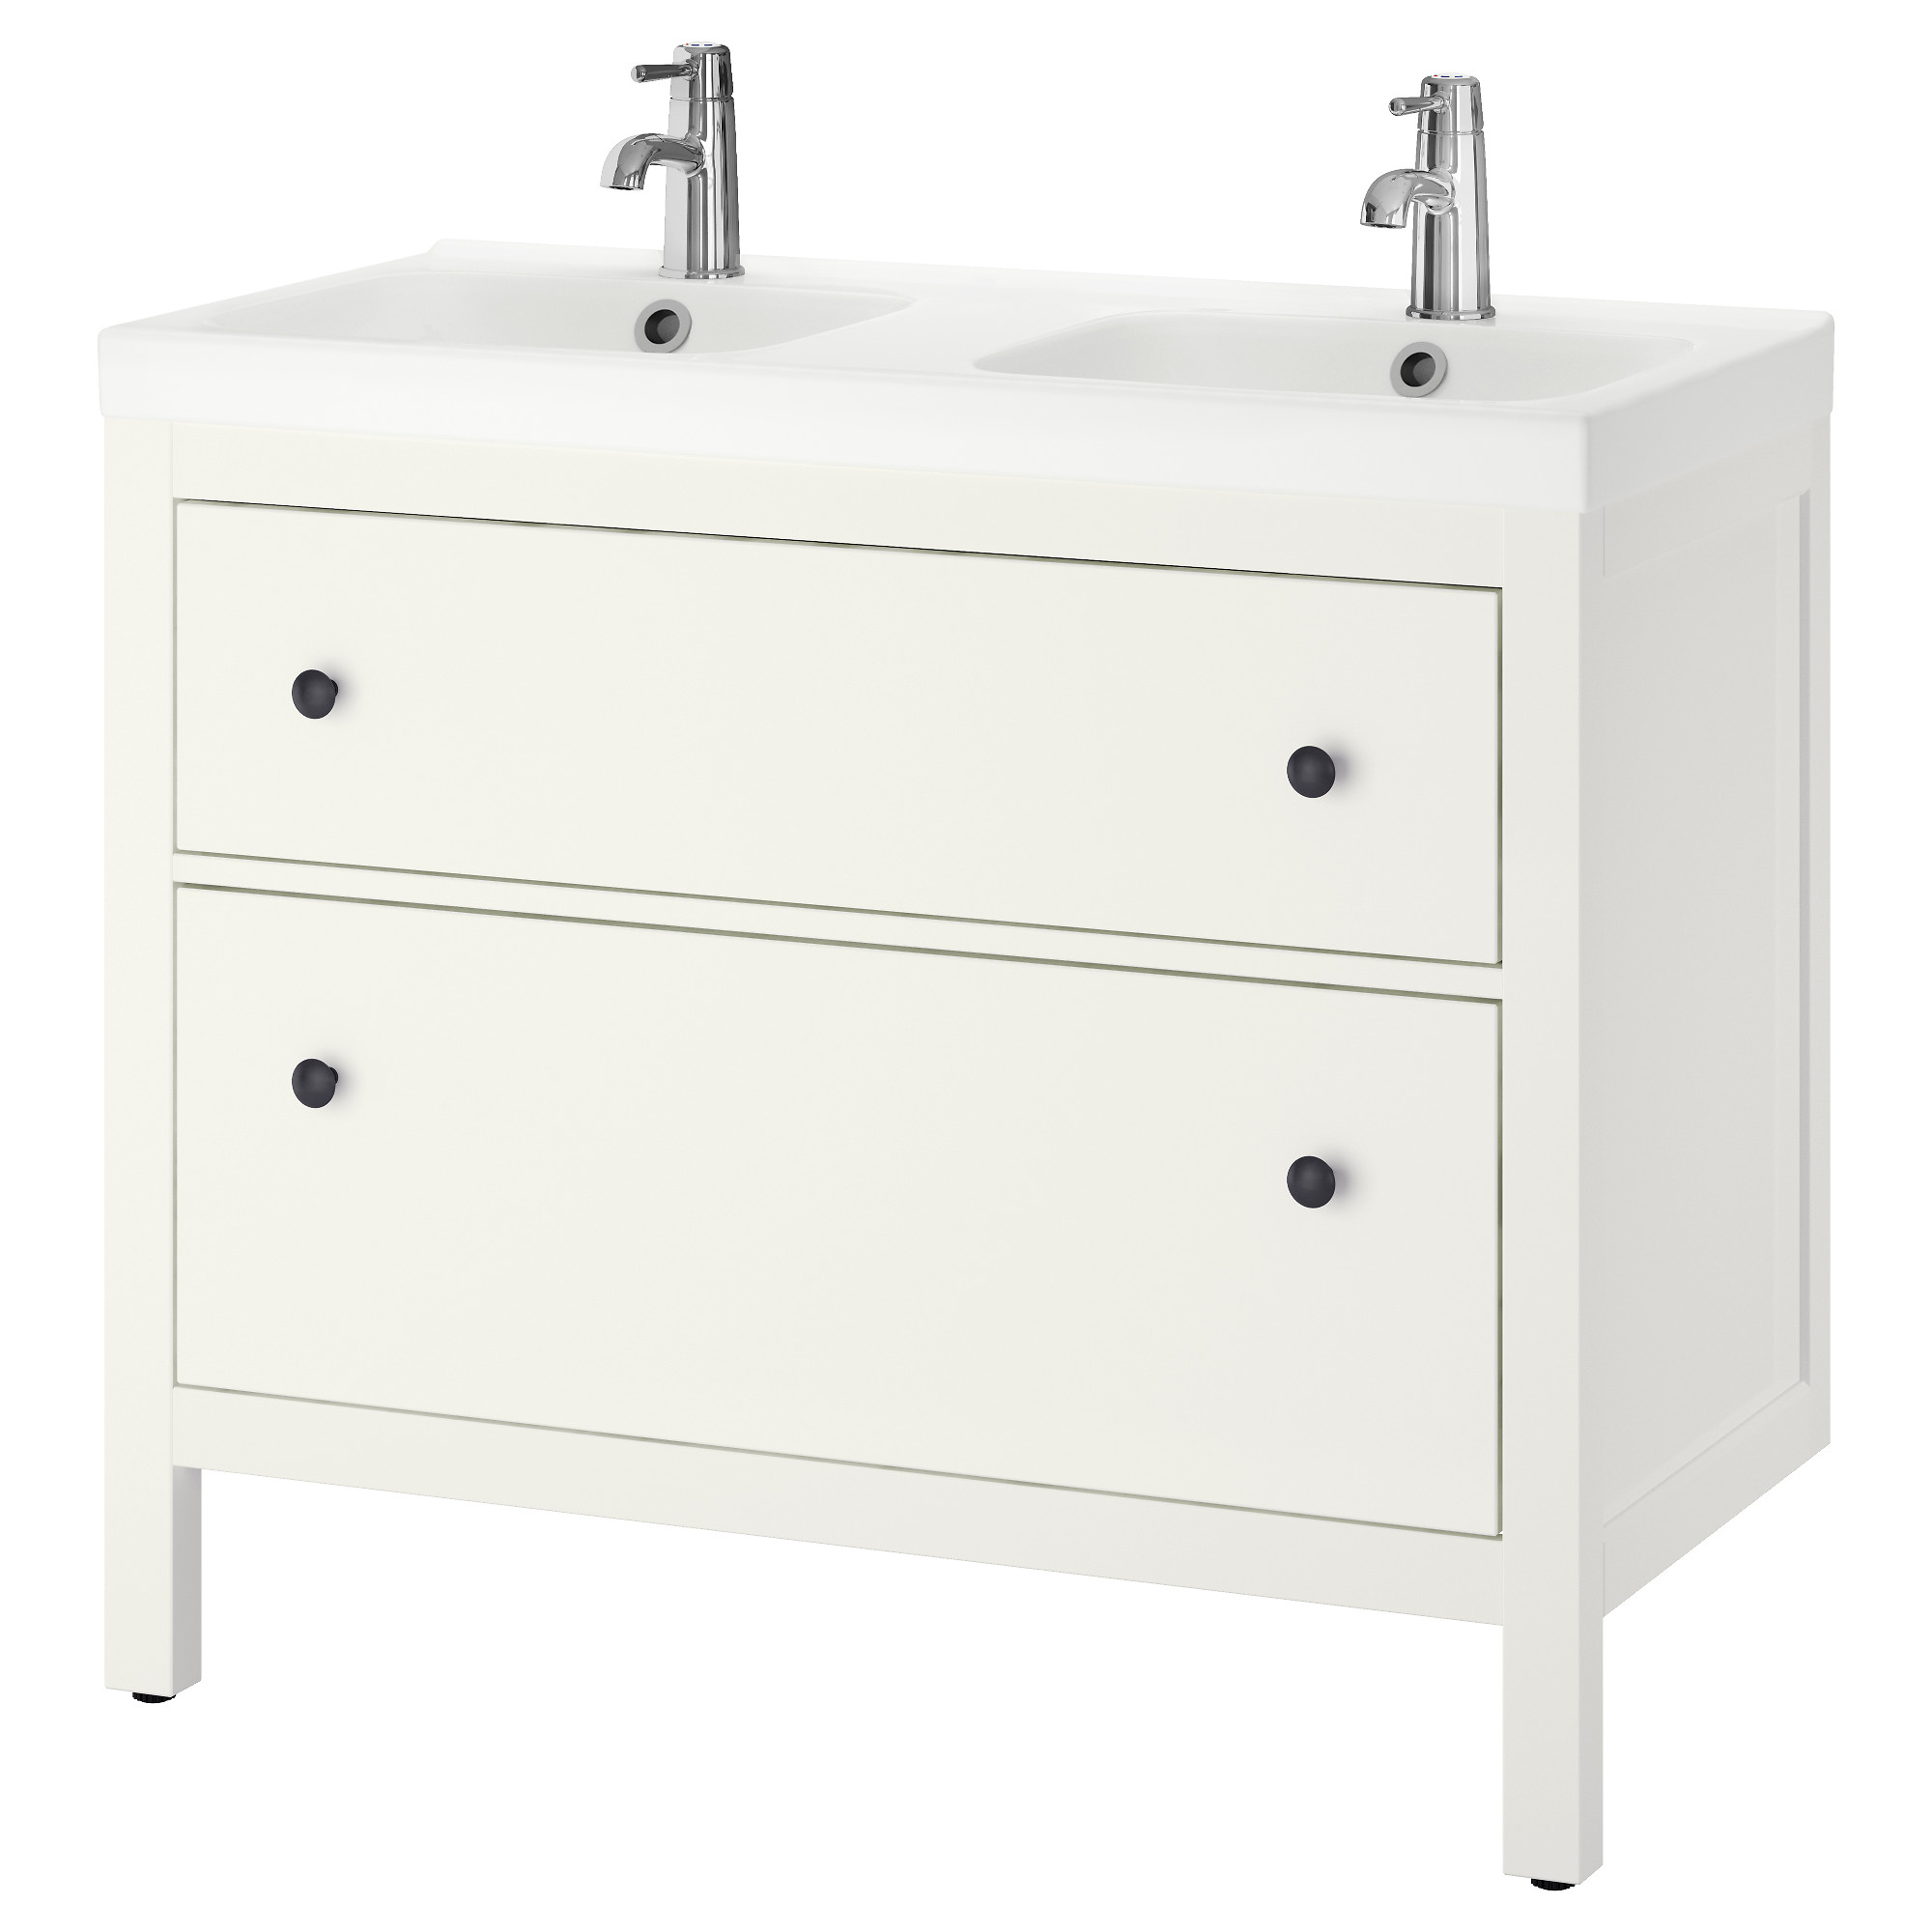 Bathroom sink cabinets ikea - Hemnes Odensvik Sink Cabinet With 2 Drawers White Width 40 1 2